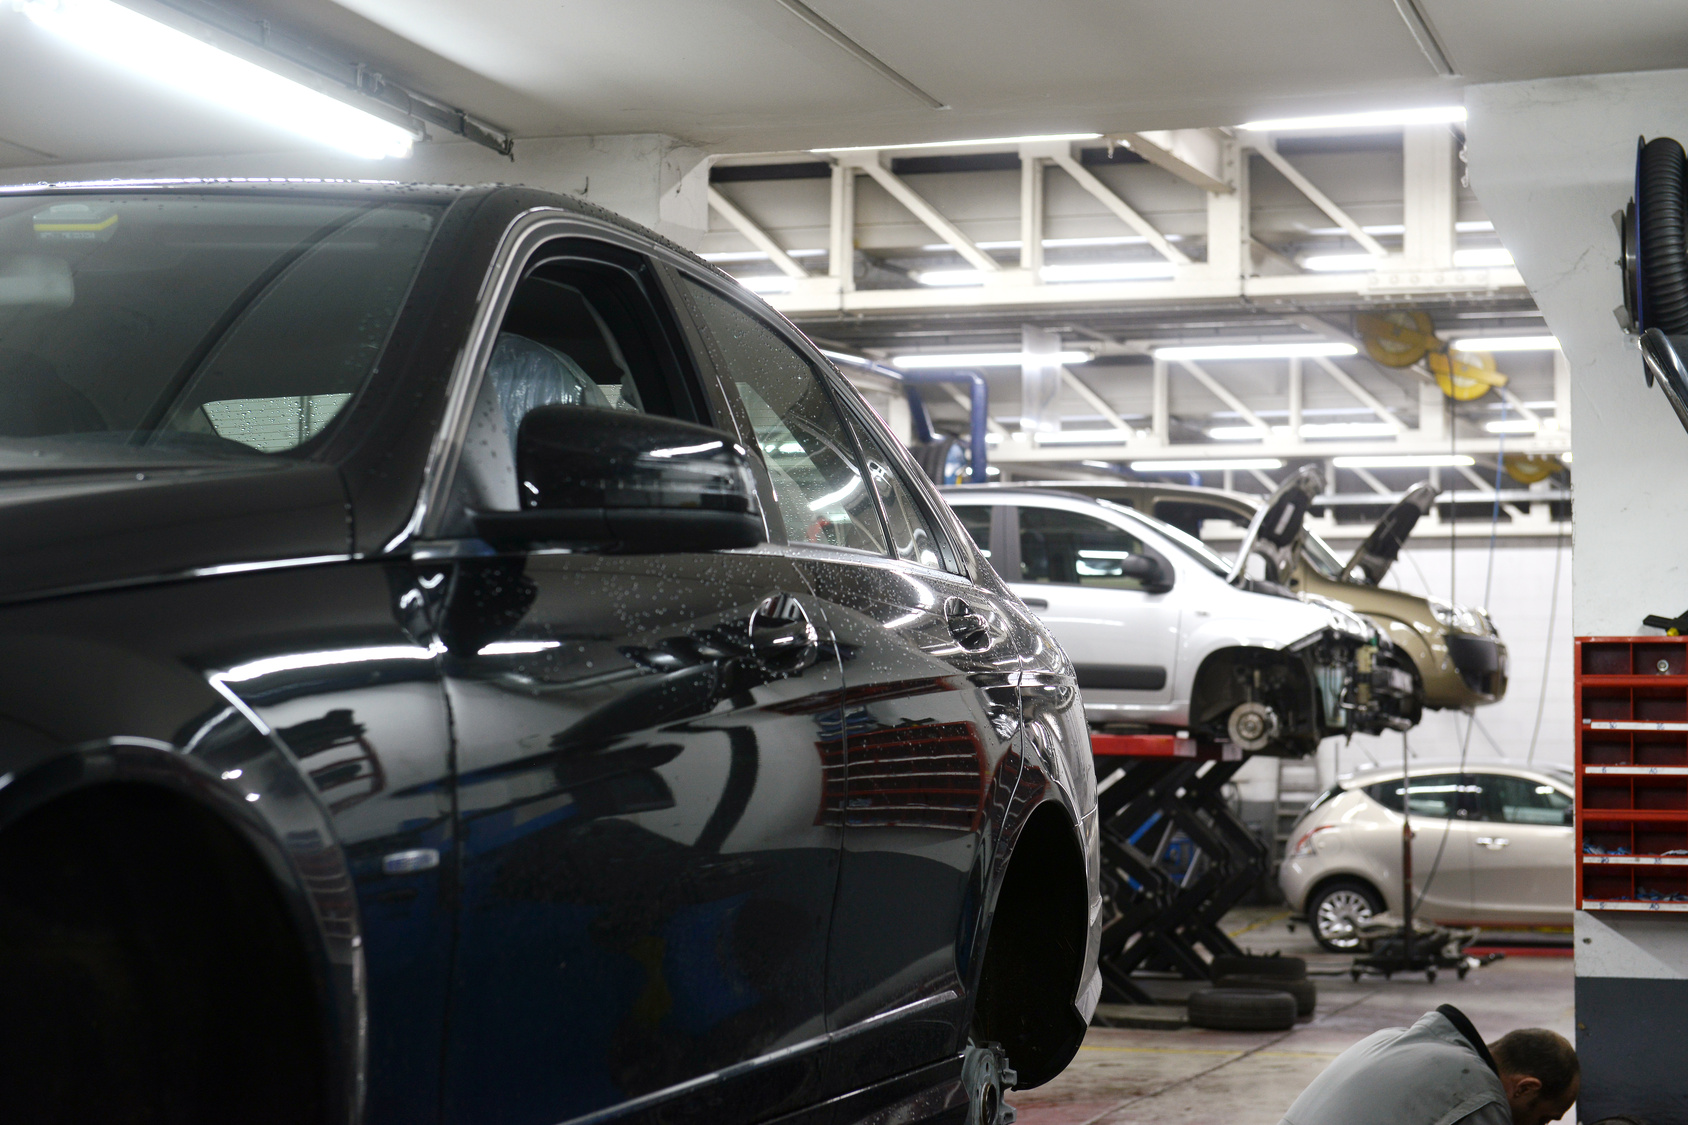 Auto Service in Snohomish